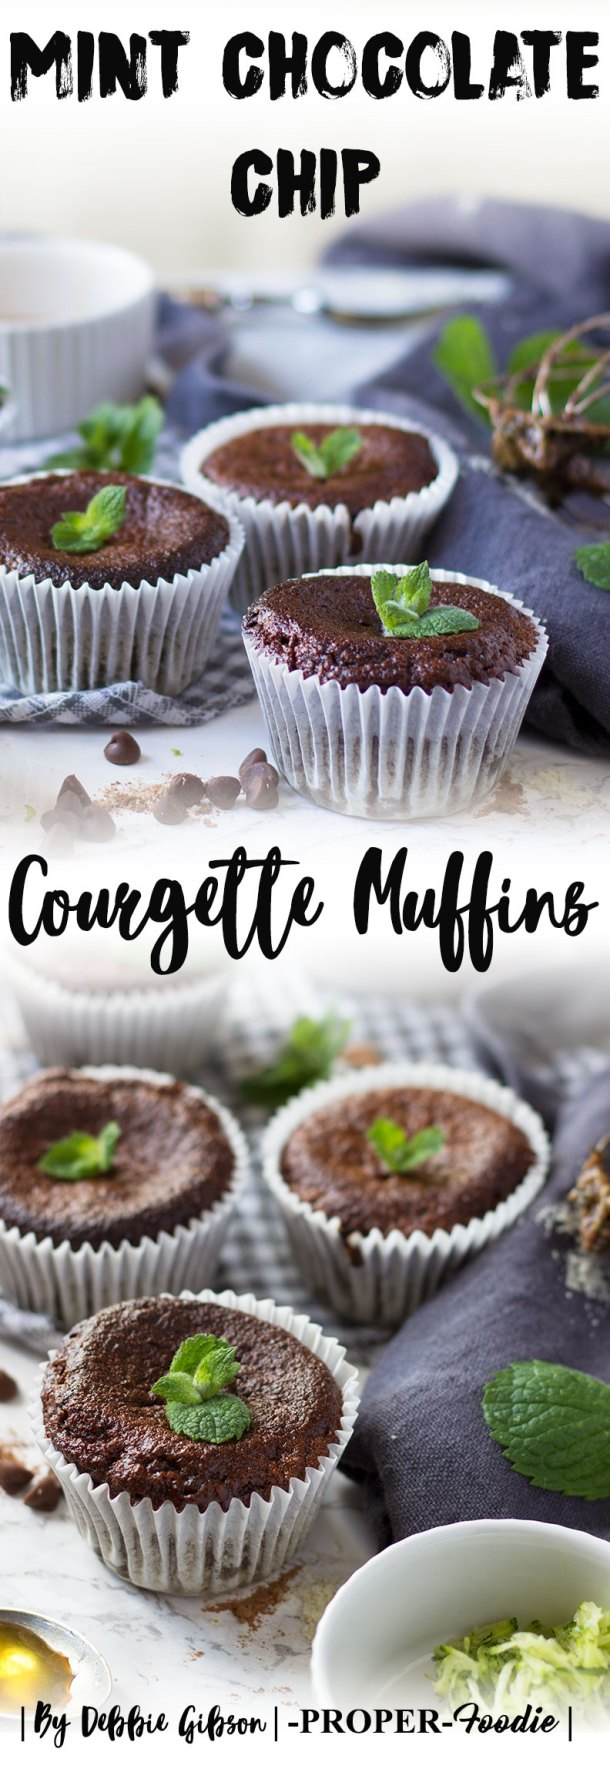 Mint chocolate chip courgette muffins